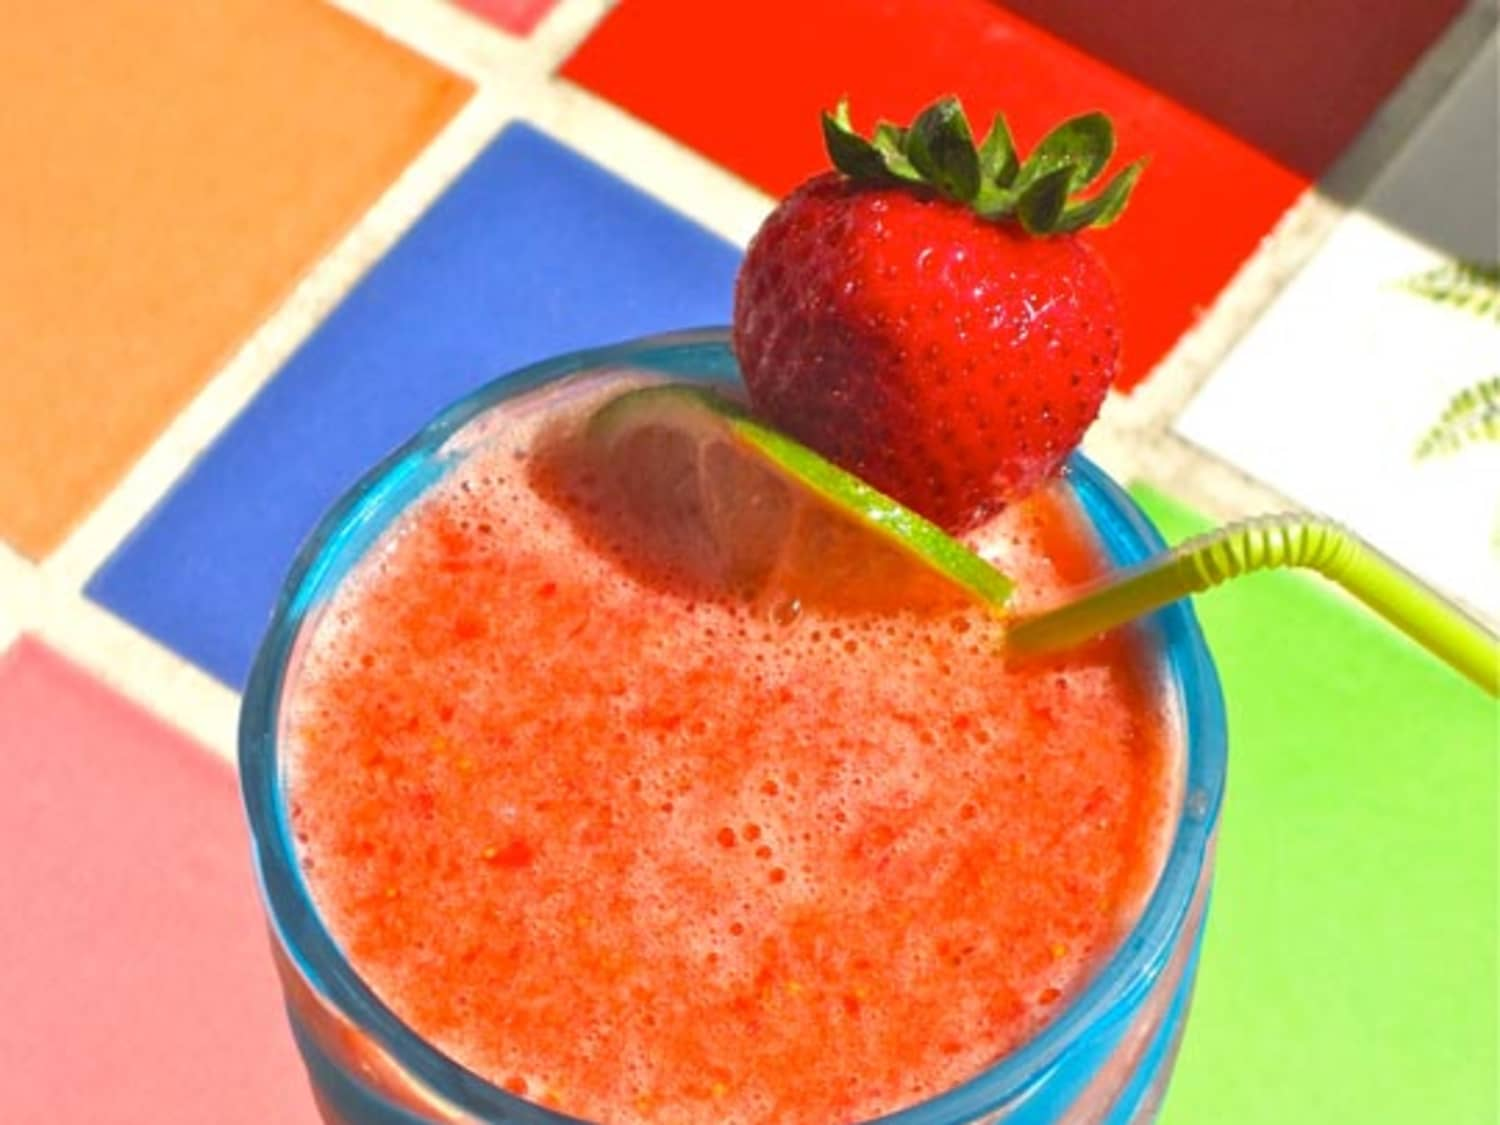 Classic Frozen Strawberry Daiquiri Recipe Kitchn The latest tweets from daisy brown (@daisybrownreal). frozen strawberry daiquiri recipe